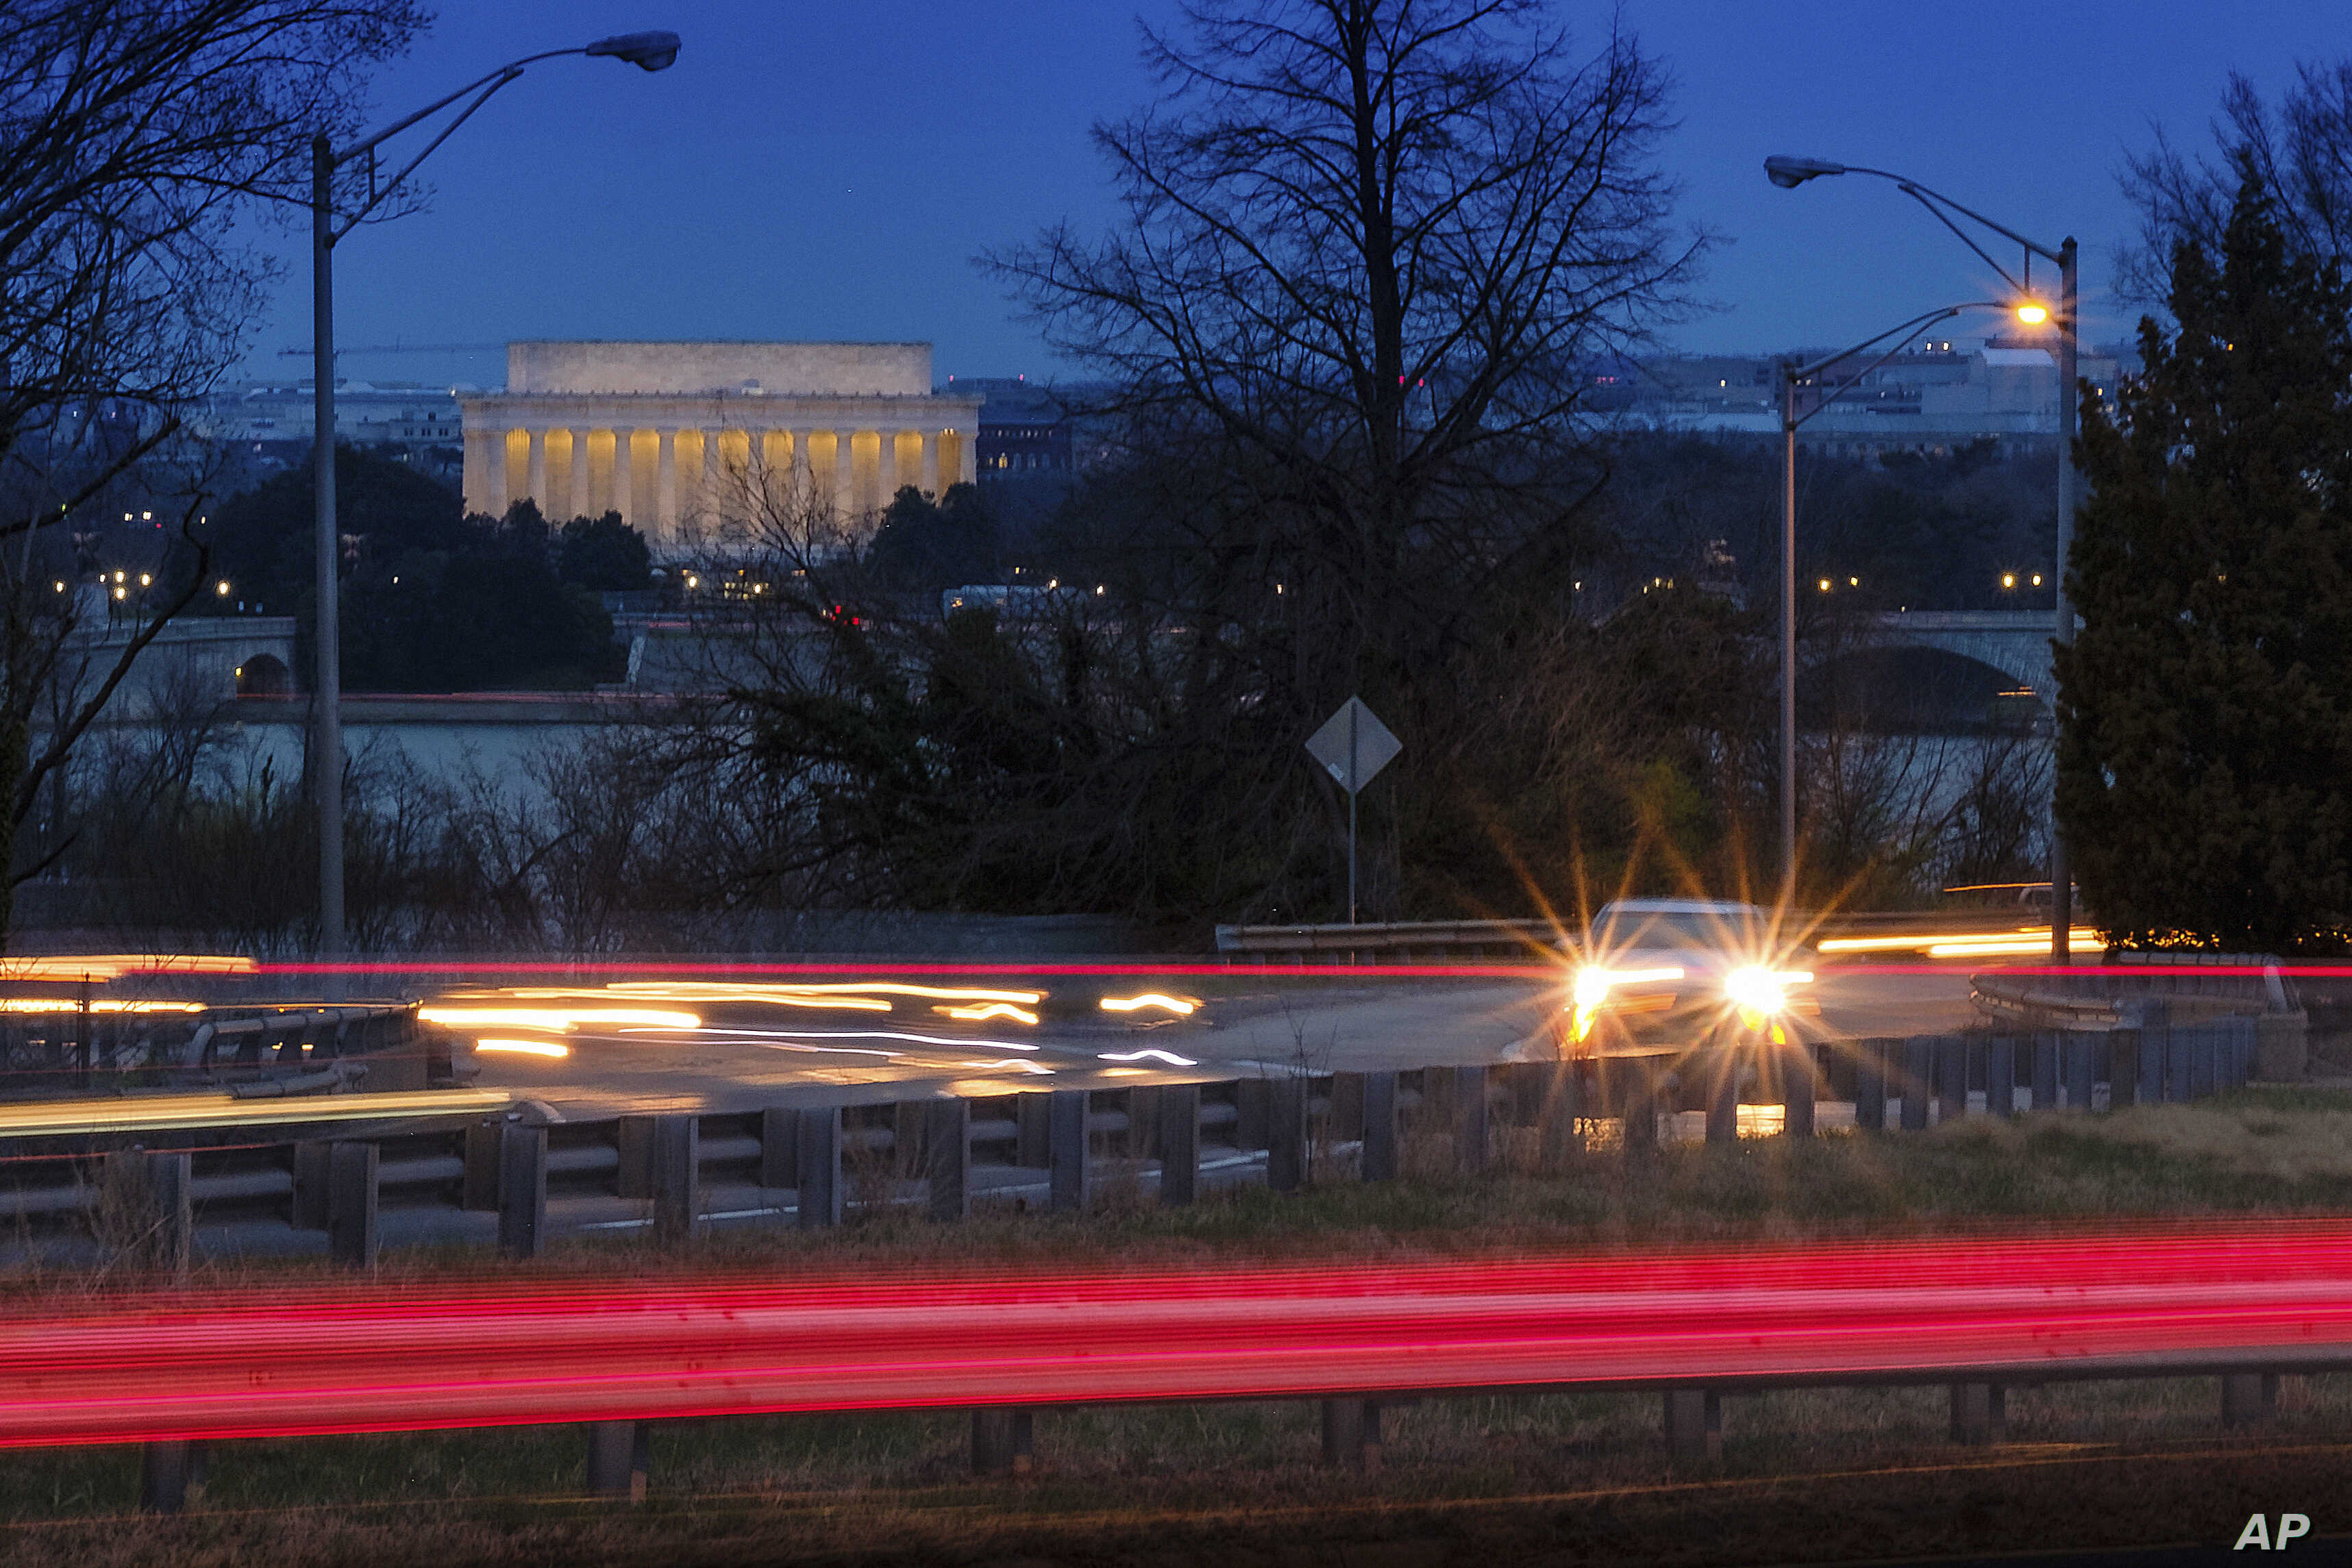 FILE - Traffic streaks along U.S. Highway 50 early in the morning, March 30, 2018, in Arlington, Va. The Trump administration announced April 2, 2018, that it would revise tough mileage standards for cars and light trucks, saying Obama-era rules were...